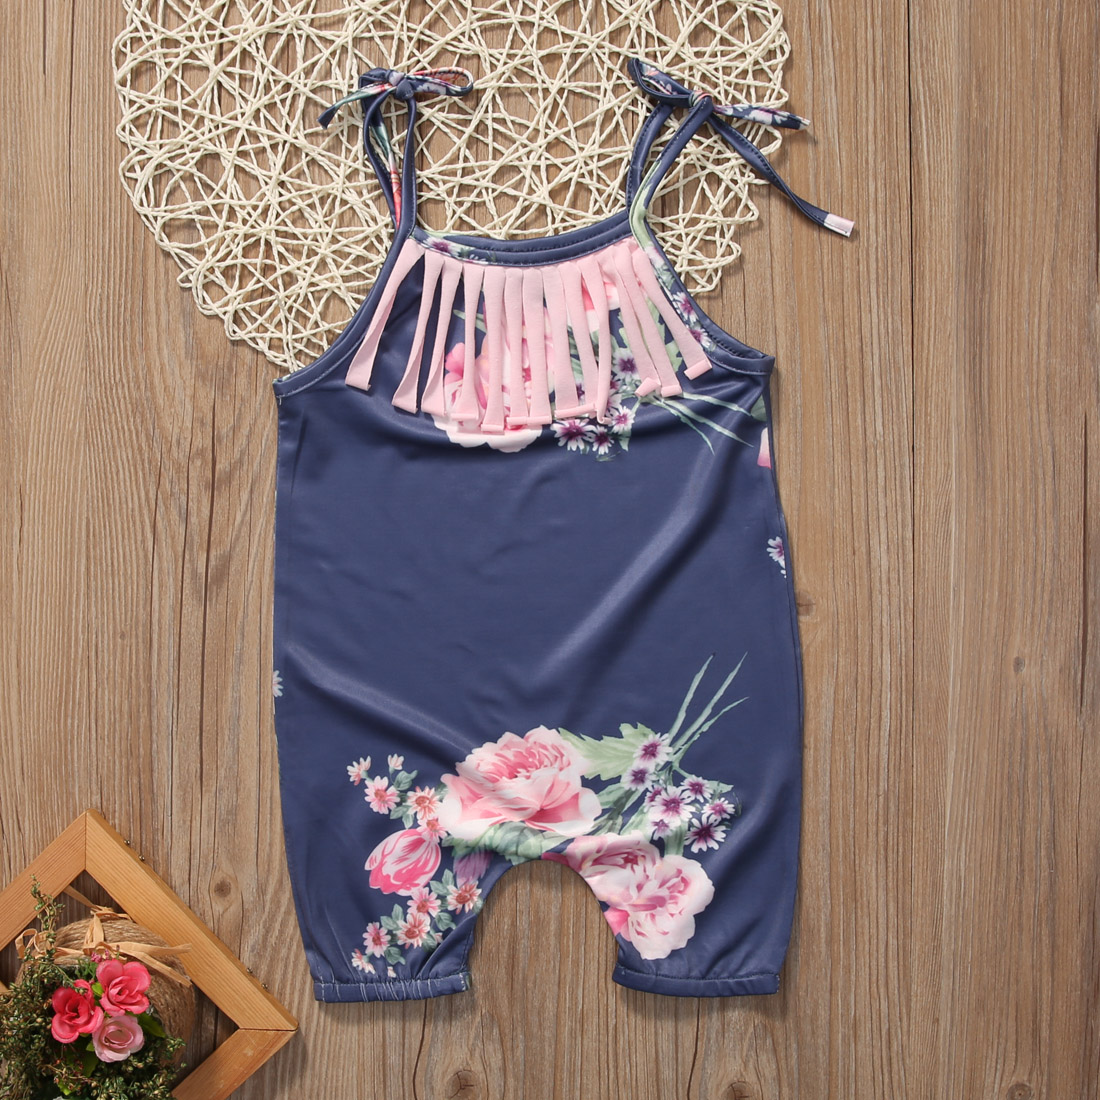 2017 Summer Cute Newborn Baby Girls Romper Floral Sunsuit Tassle Clothes Outfits Sleeveless Bebes One Pieces Jumpsuit 0-24M cute newborn baby girls clothes floral infant bebes romper cotton jumpsuit one pieces outfit sunsuit 0 18m